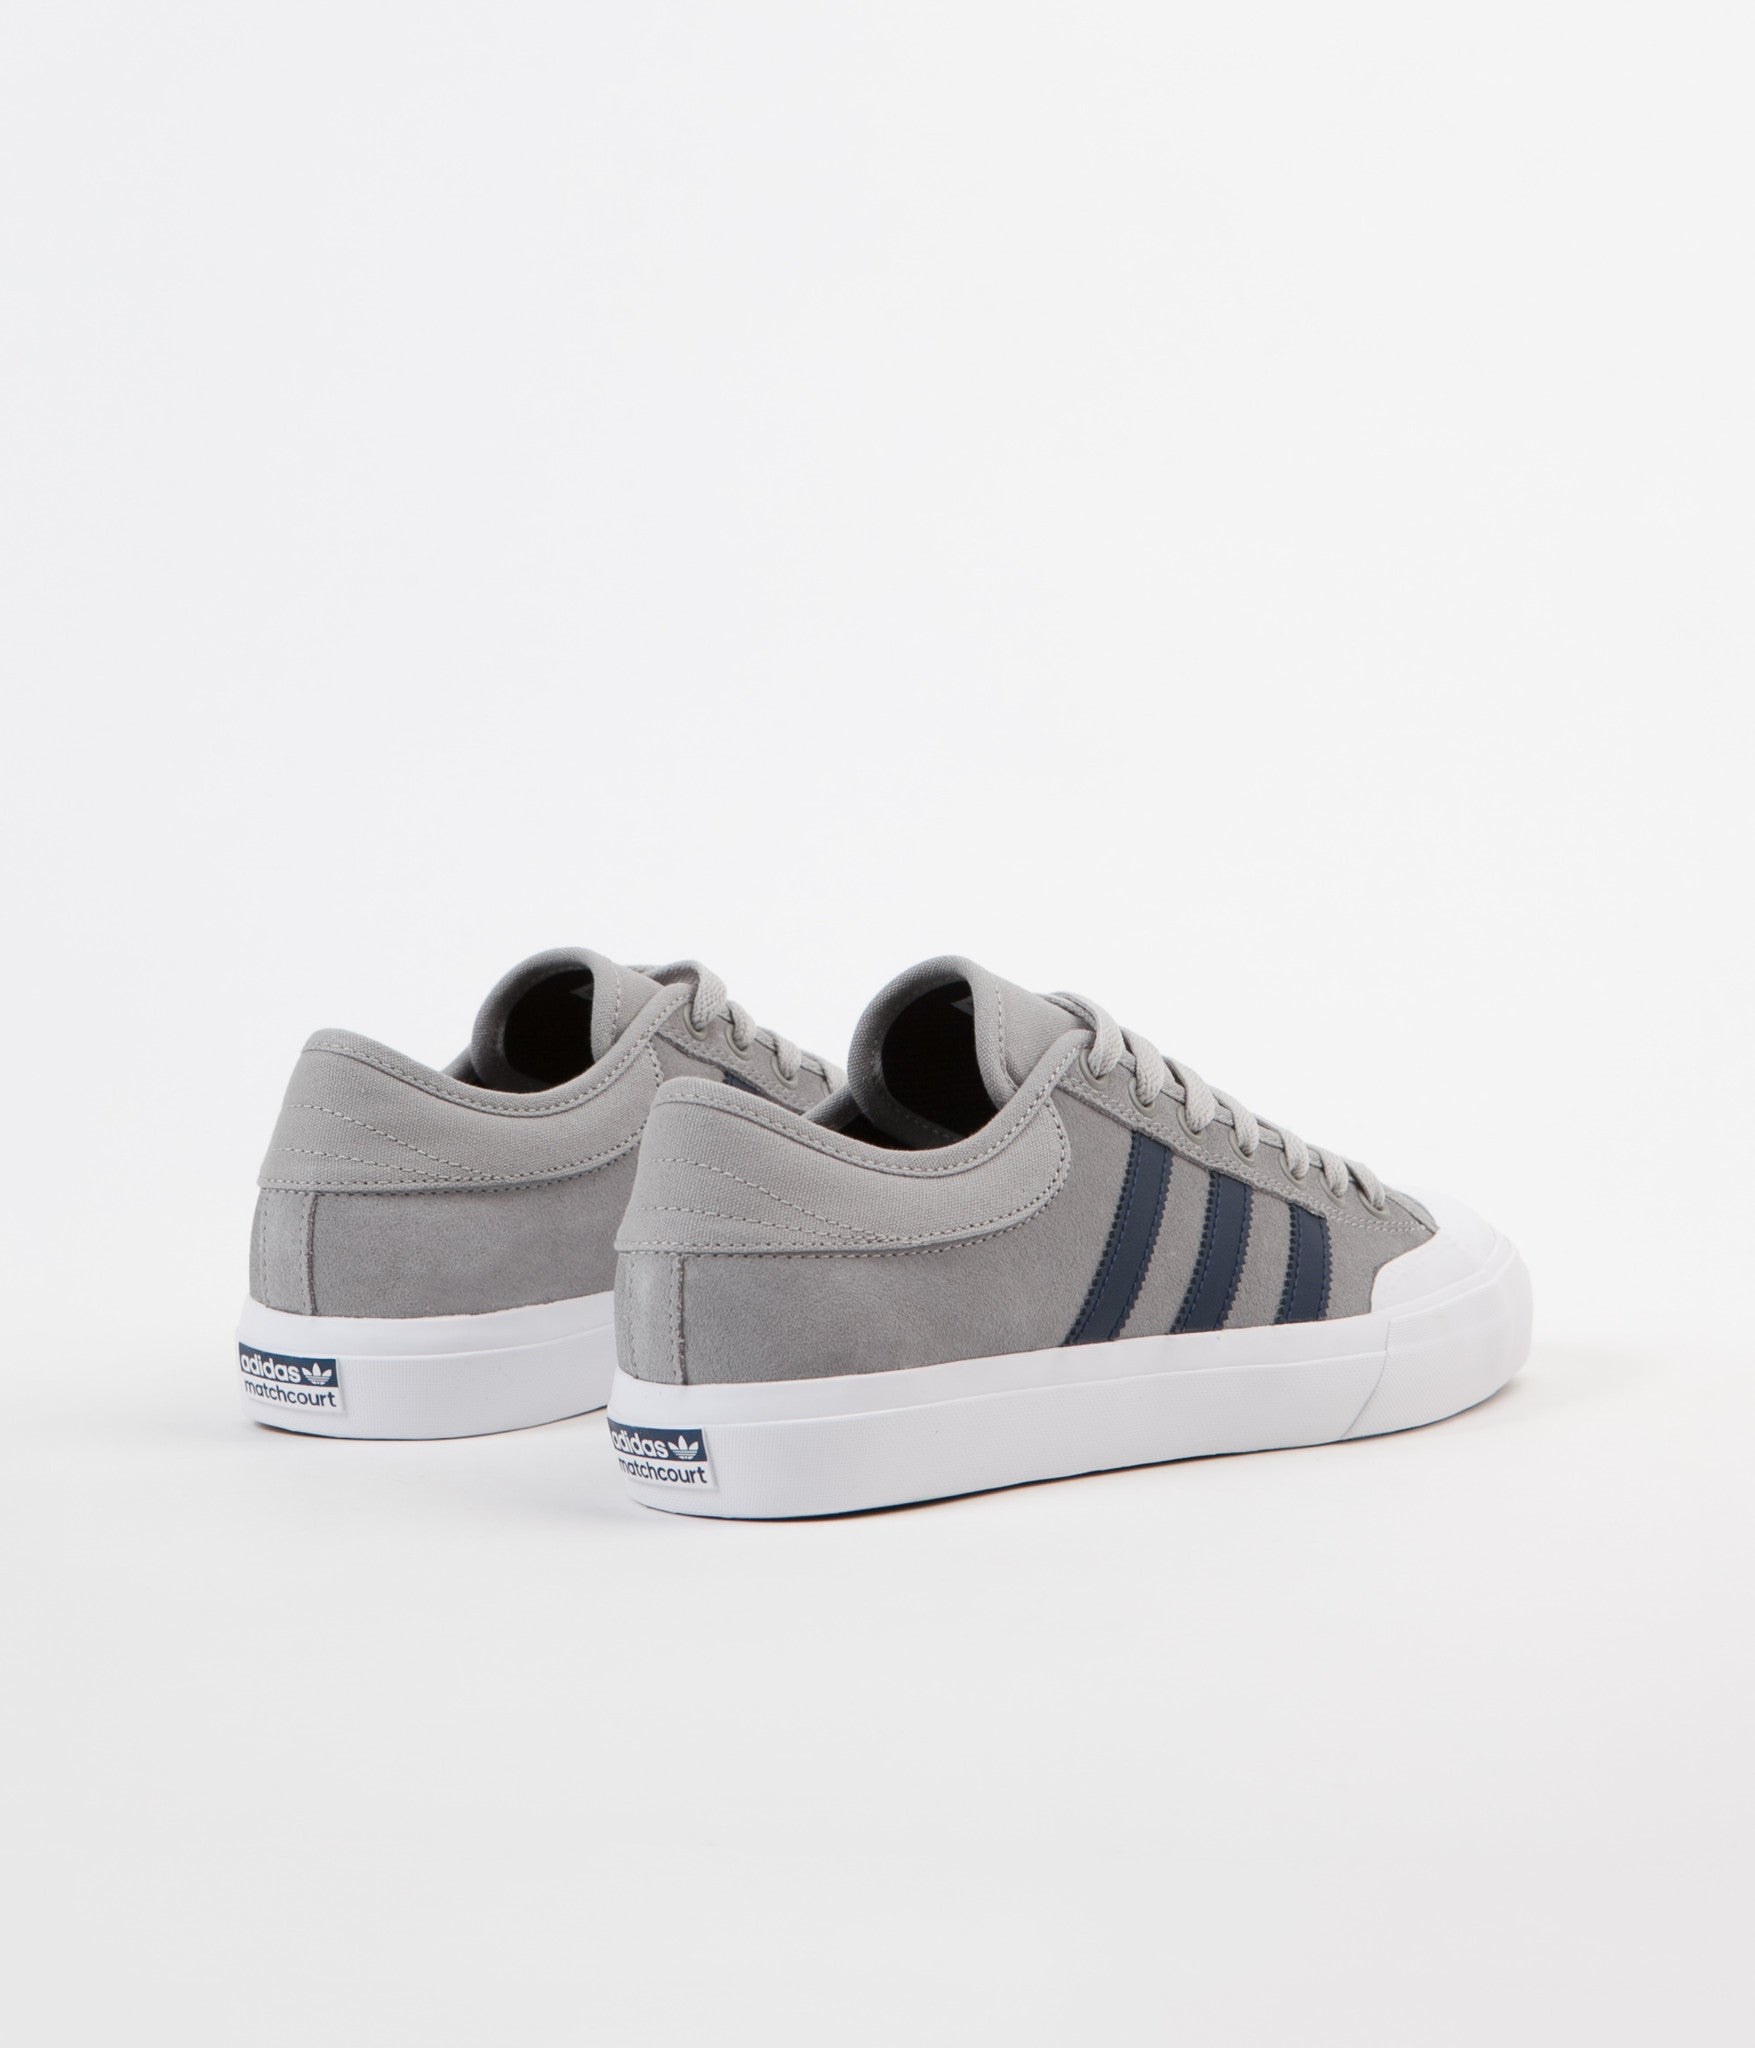 Adidas Matchcourt Shoes - Solid Grey / Collegiate Navy / White